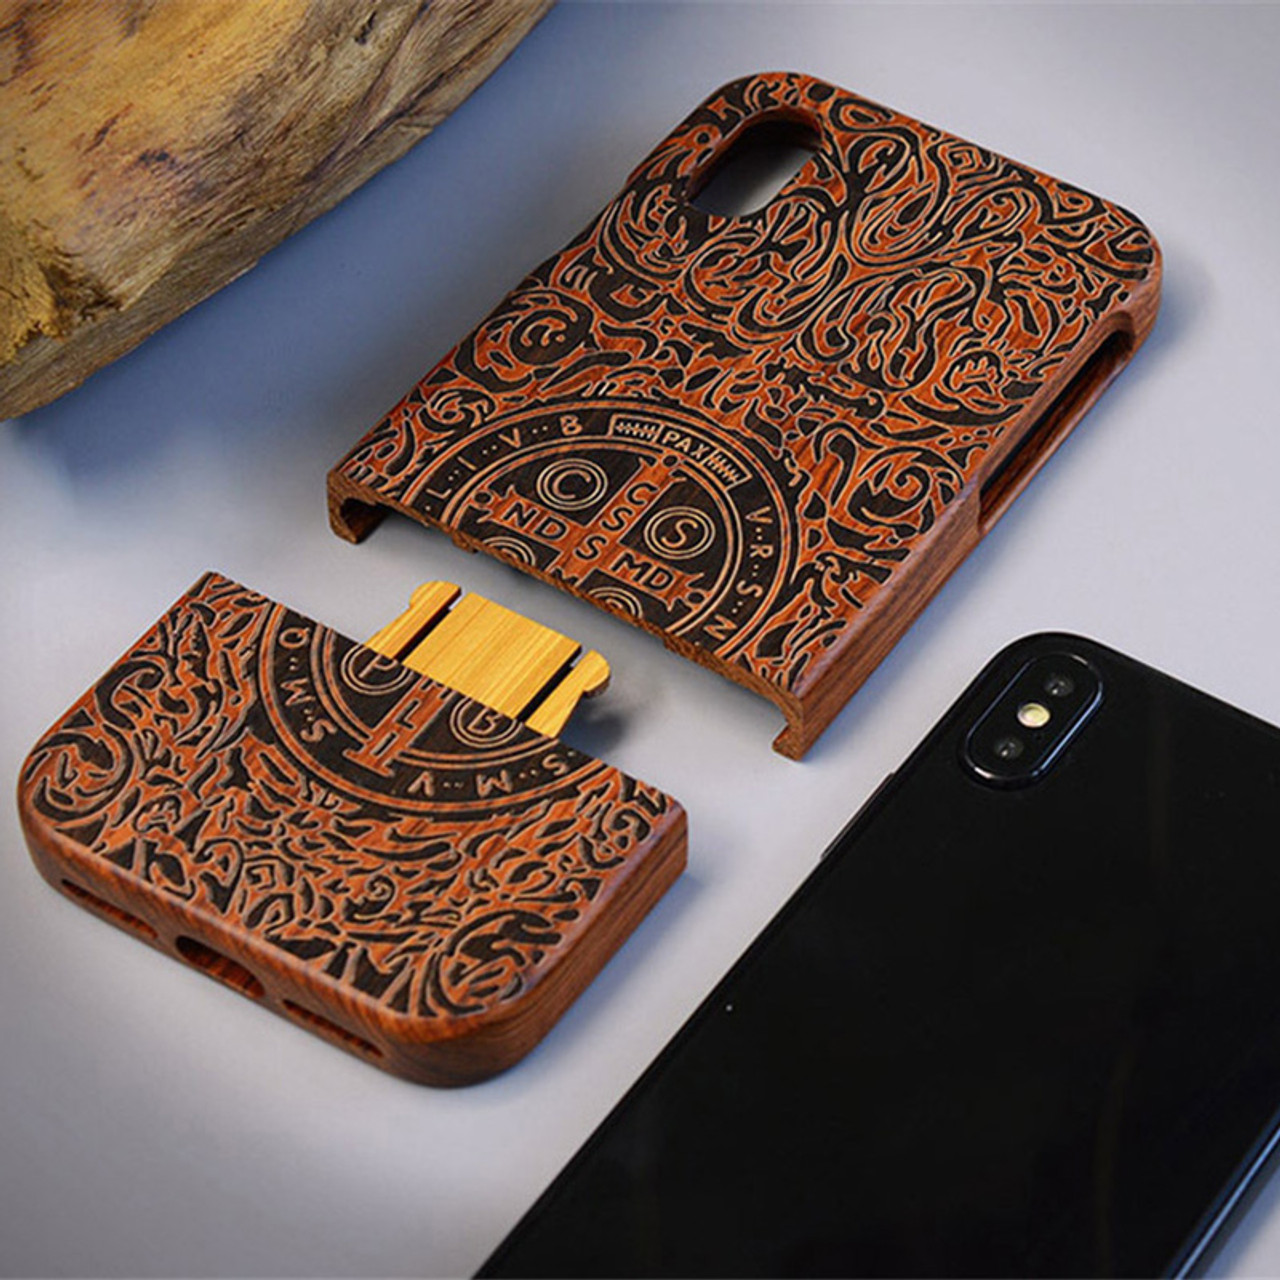 Carved Tiger Dragon Luxury Wood Phone Case For Apple Iphone X Xs Max Xr 5 5s Se 6 6plus 6s 7 8 Plus Full Wooden Case Cover